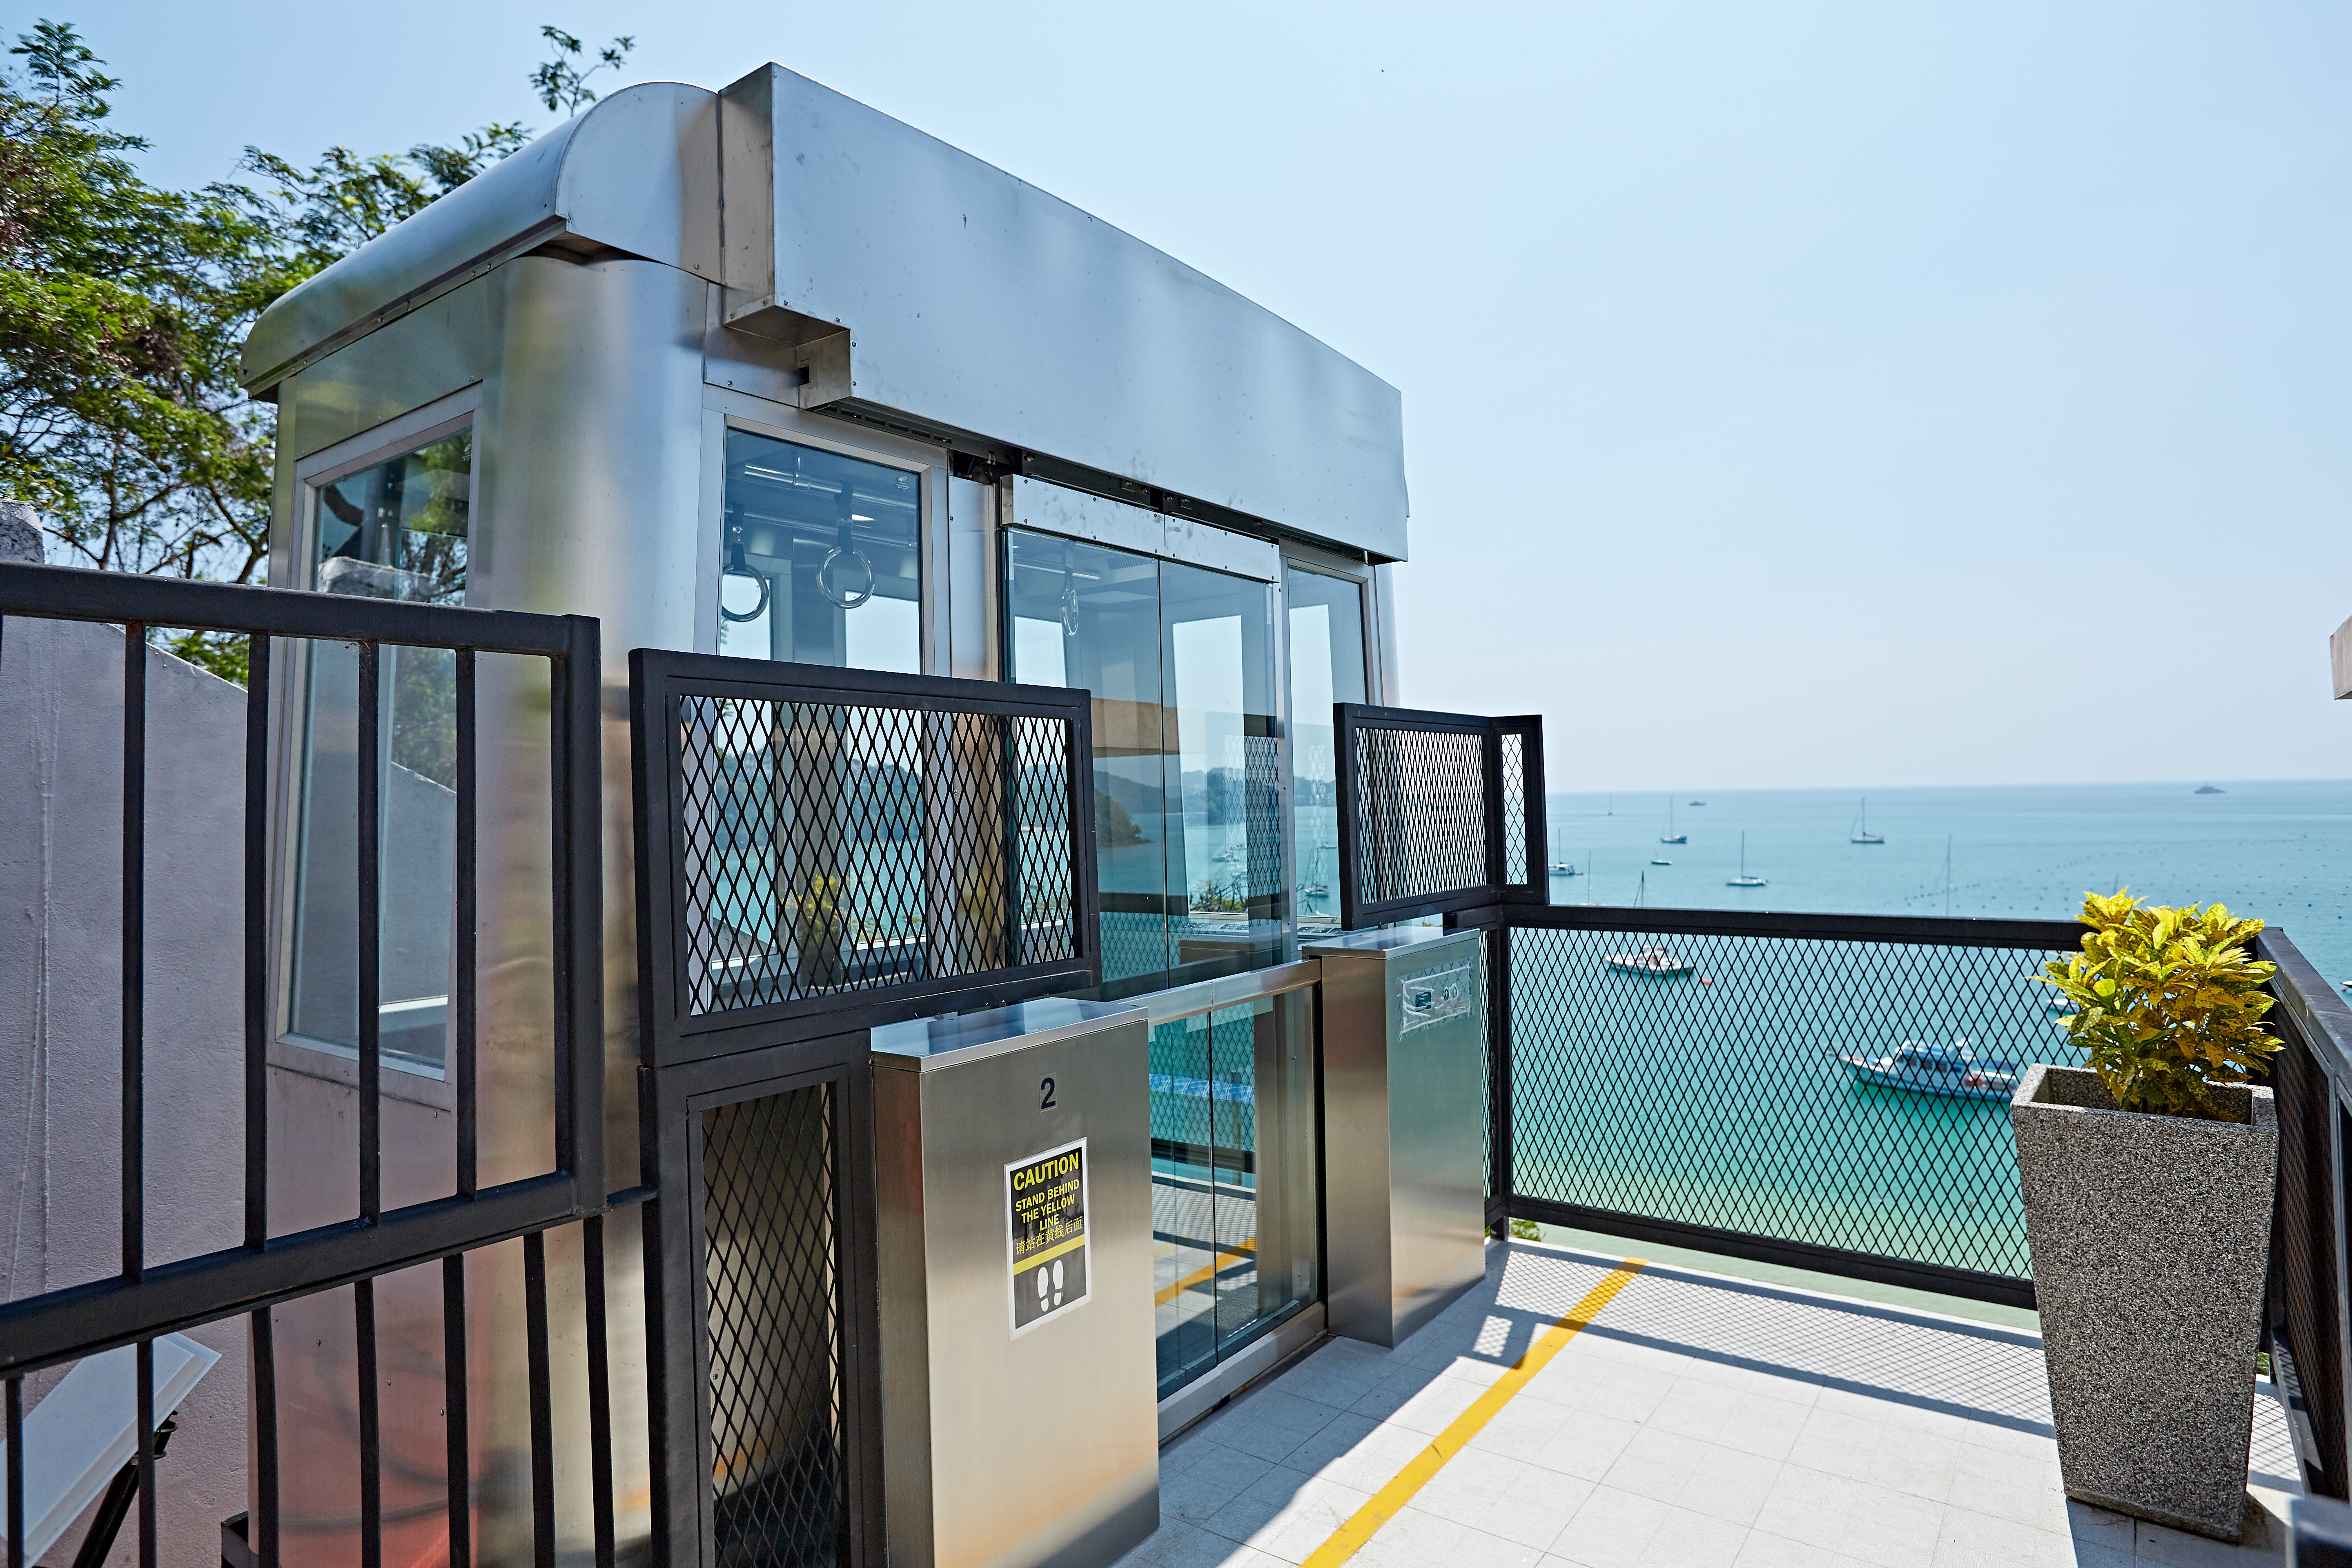 Tram service that guest can enjoy panoramic sea view during go up-down.